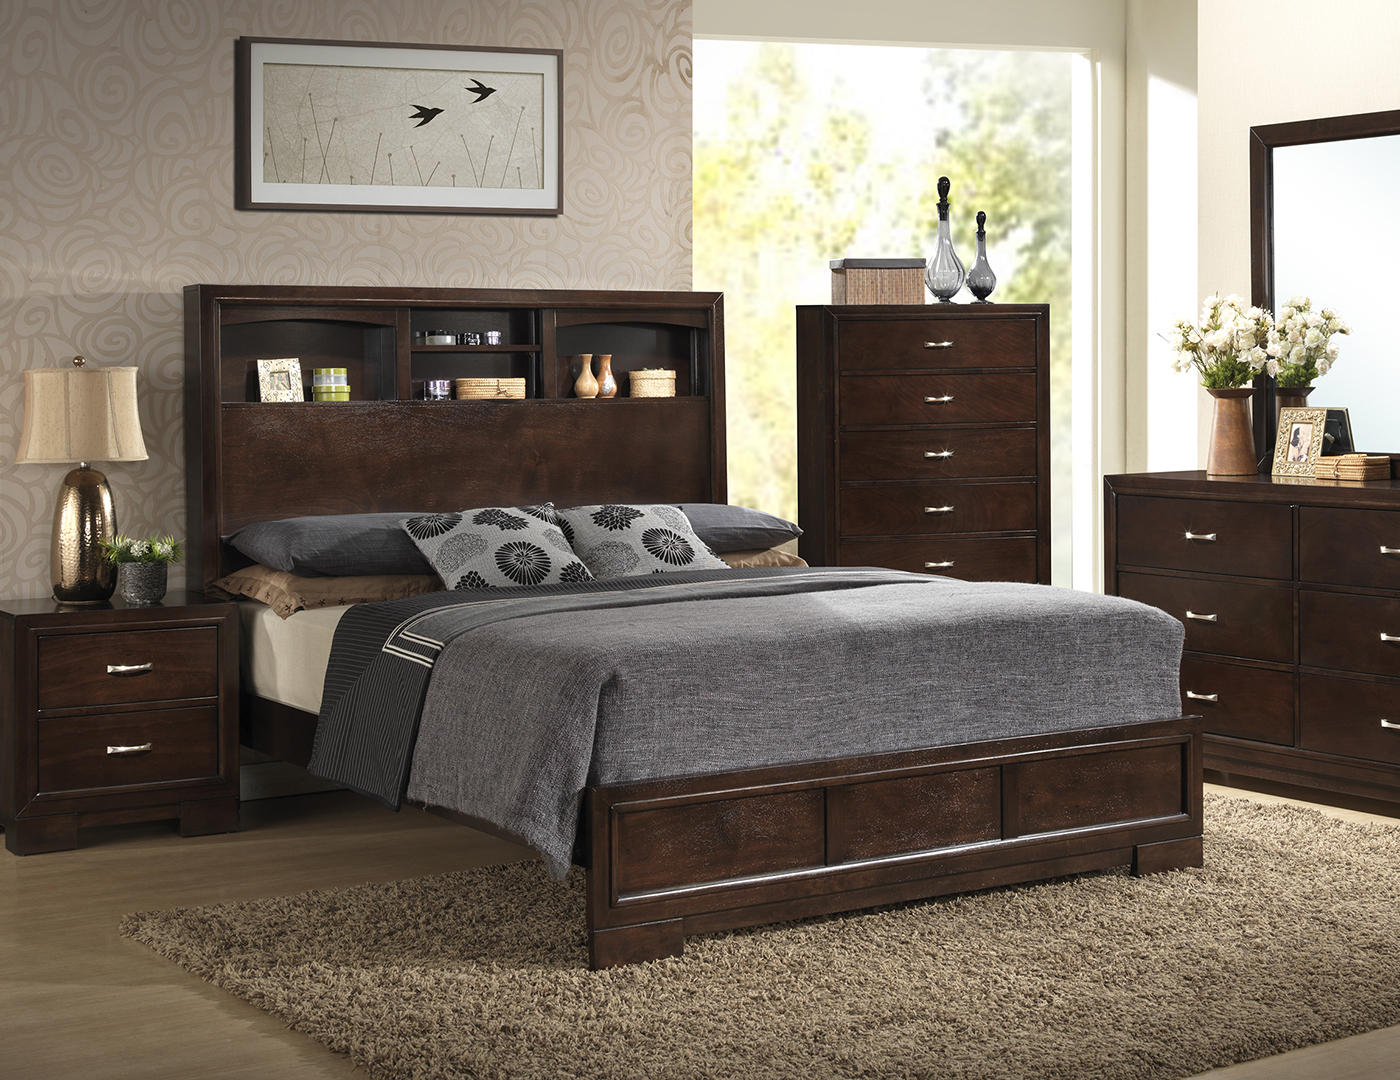 Bookcase Headboard steinhafels - harper queen bookcase headboard bed